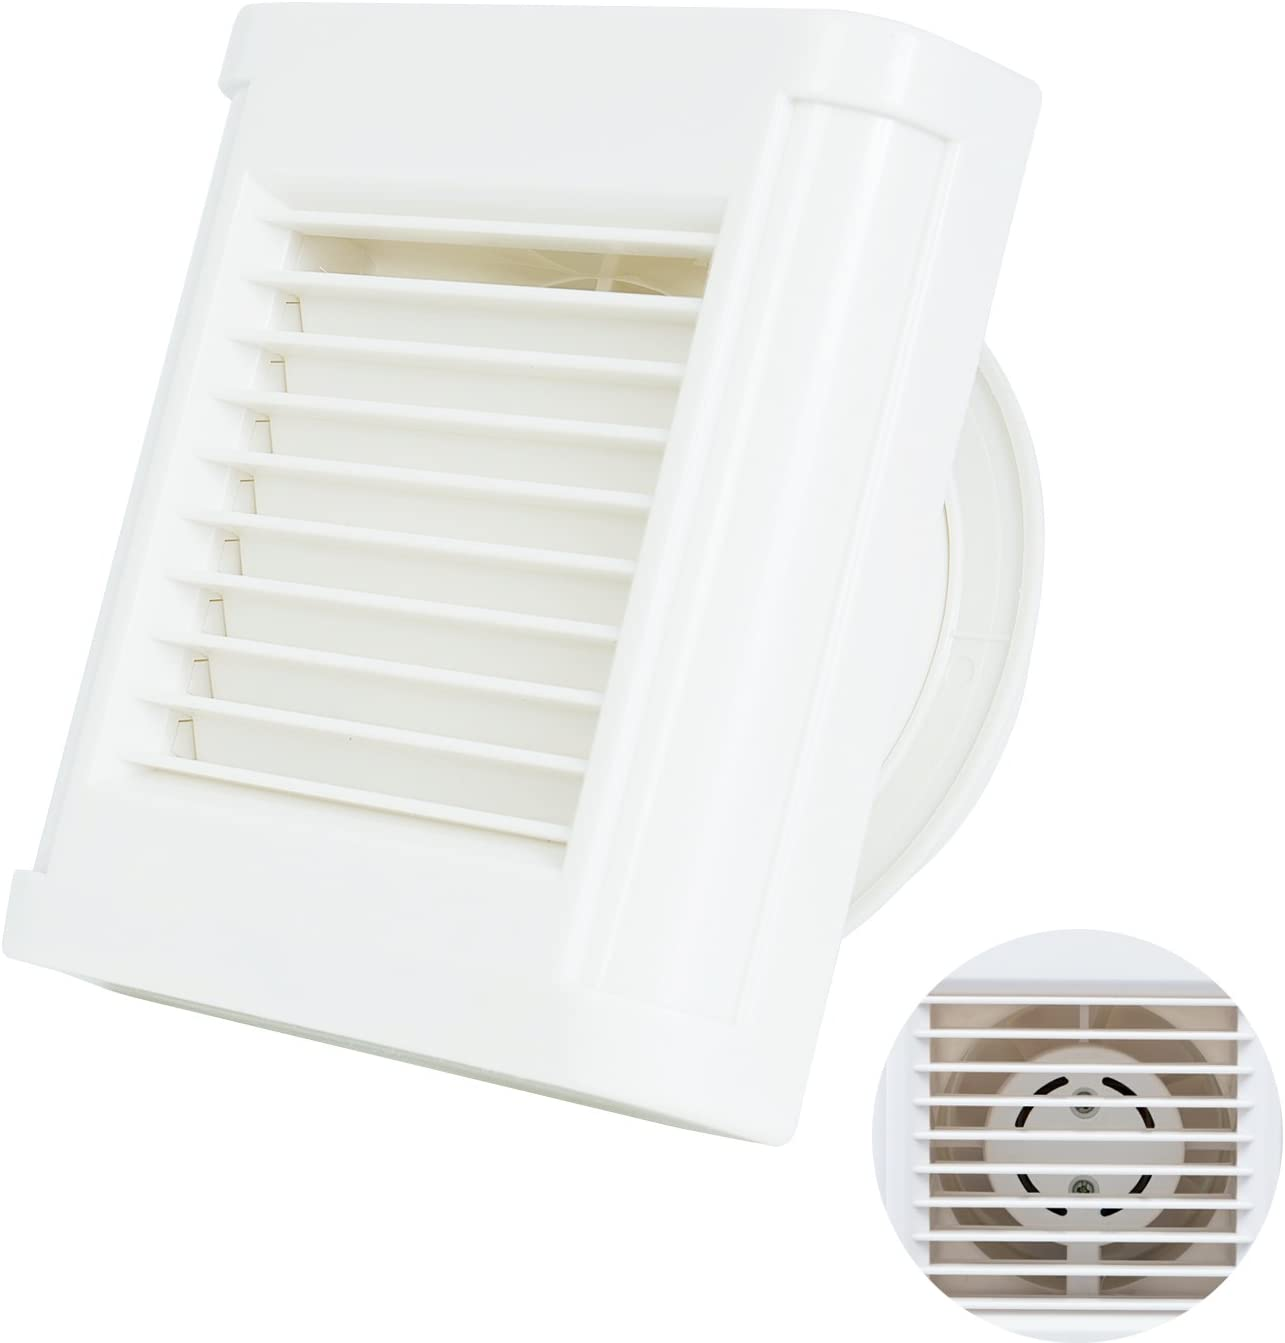 HG POWER Strong Exhaust Extractor Fan Wall Mount /& Ceiling Exhaust Fan Built-in Household Ventilation Fans Without Plug HG-PI372 Ventilation Exhaust Fan